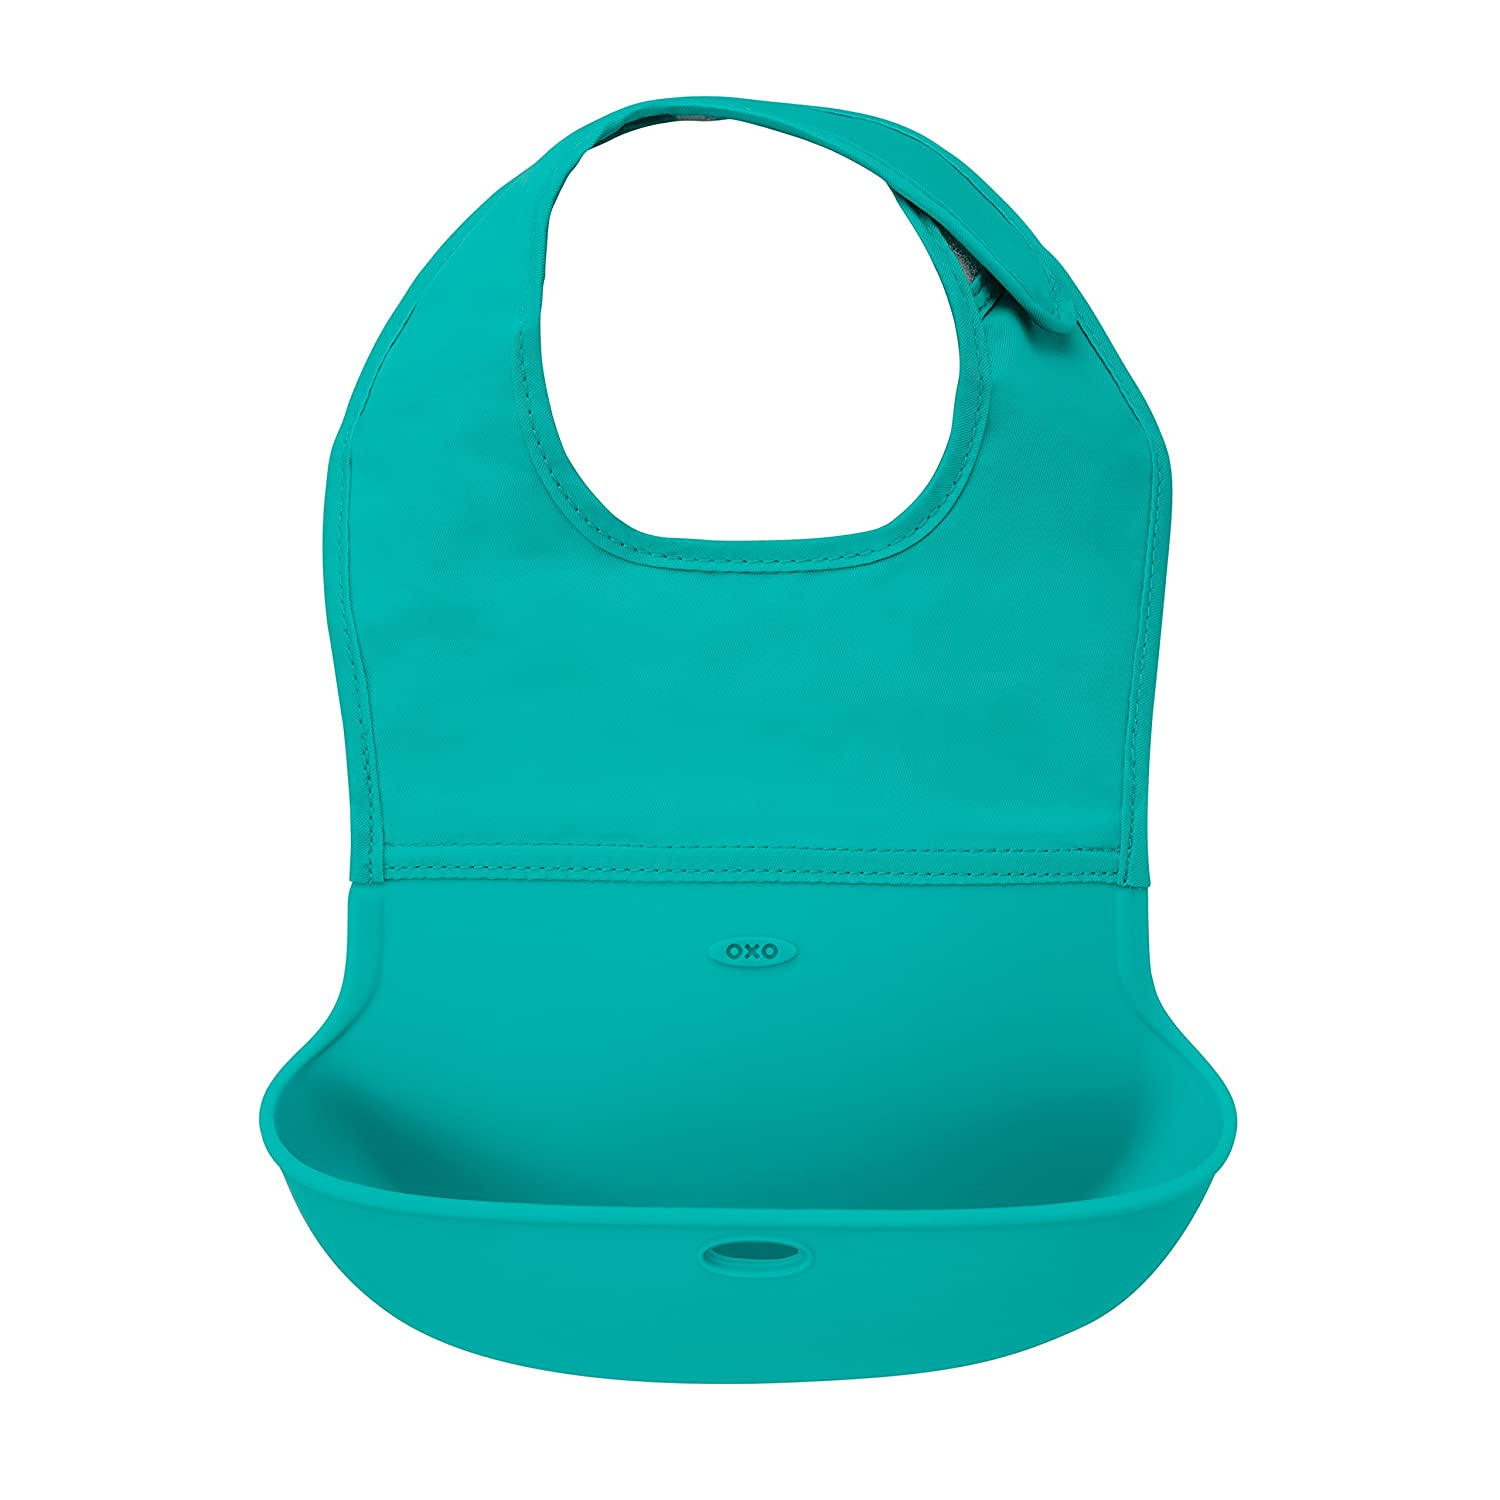 OXO Tot Waterproof Silicone Roll Up Bib with Comfort-Fit Fabric Neck, Teal 61135500